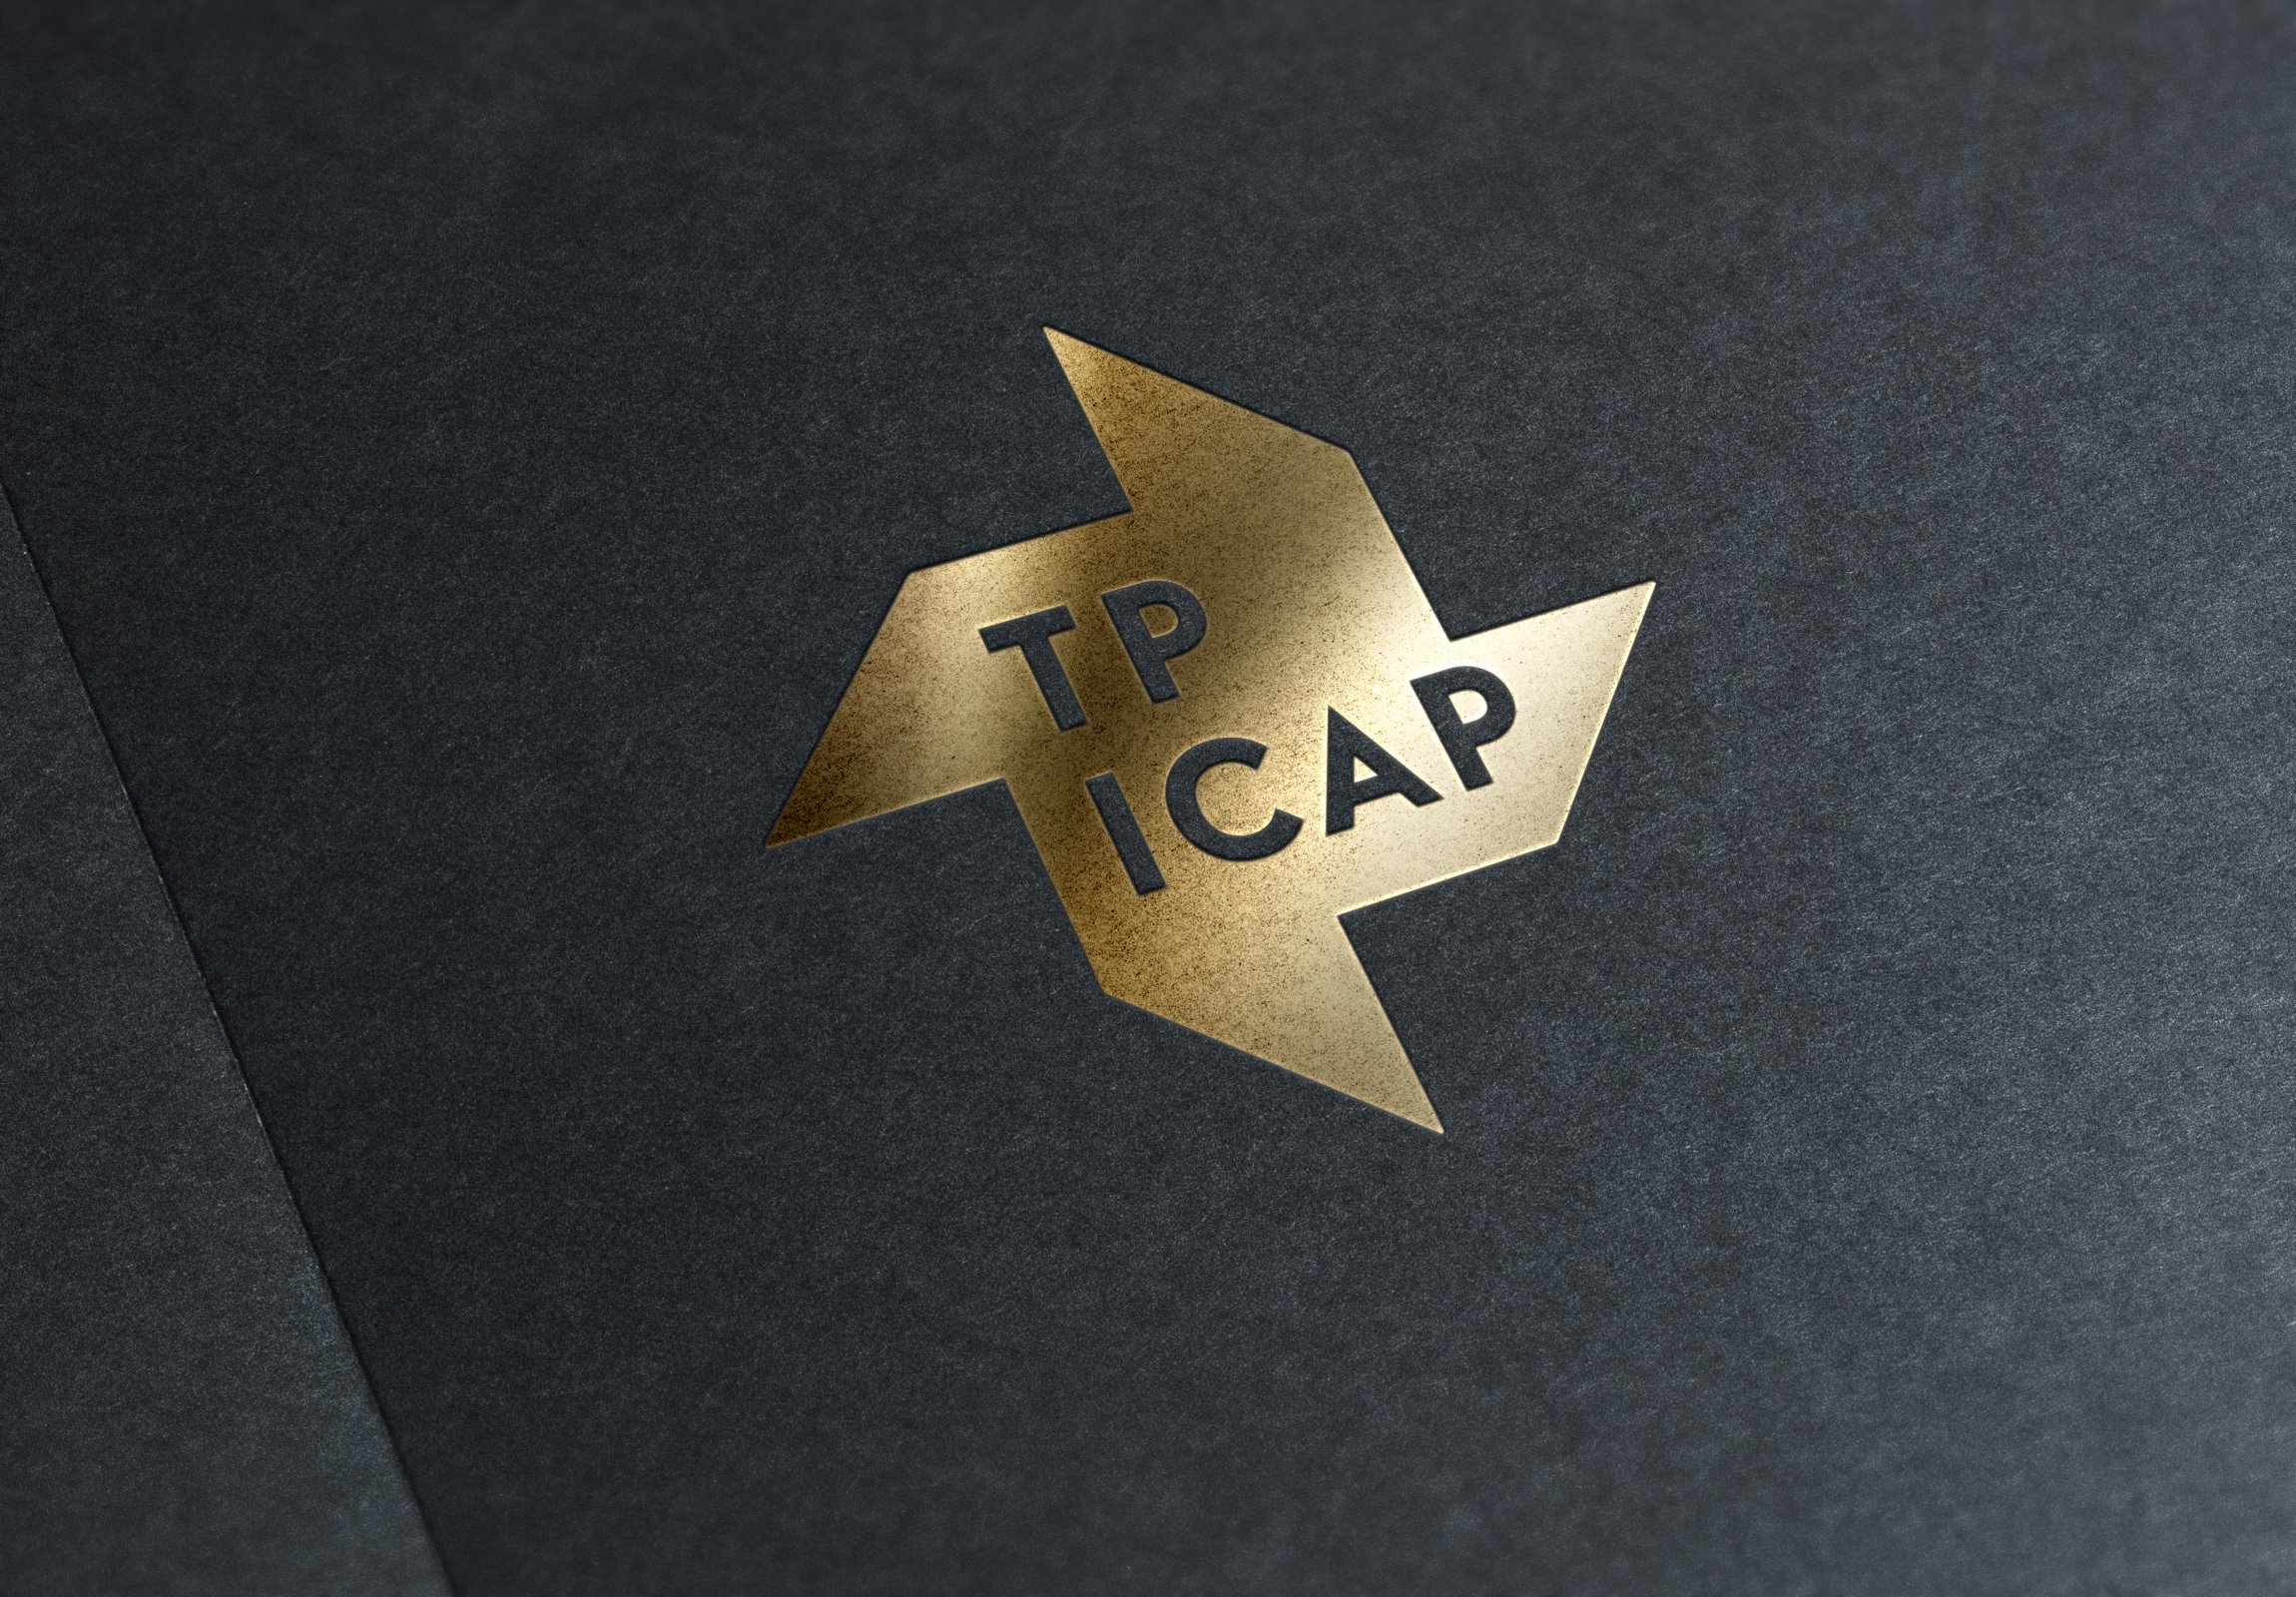 Chromatic_TPC_Logo_Gold_Stamp copy.jpg